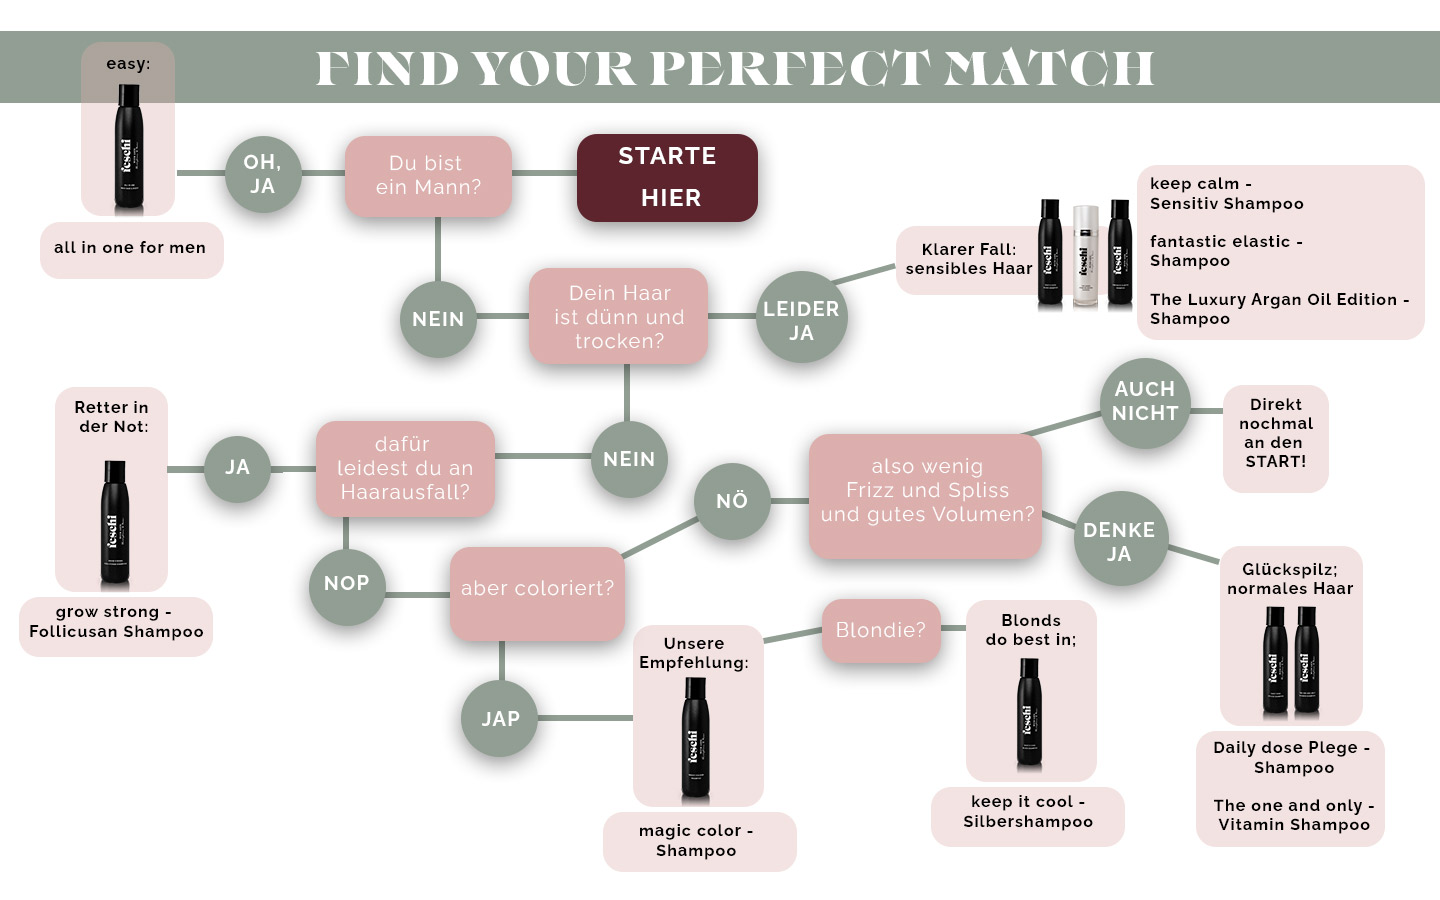 Haarquiz-find-your-perfect-match